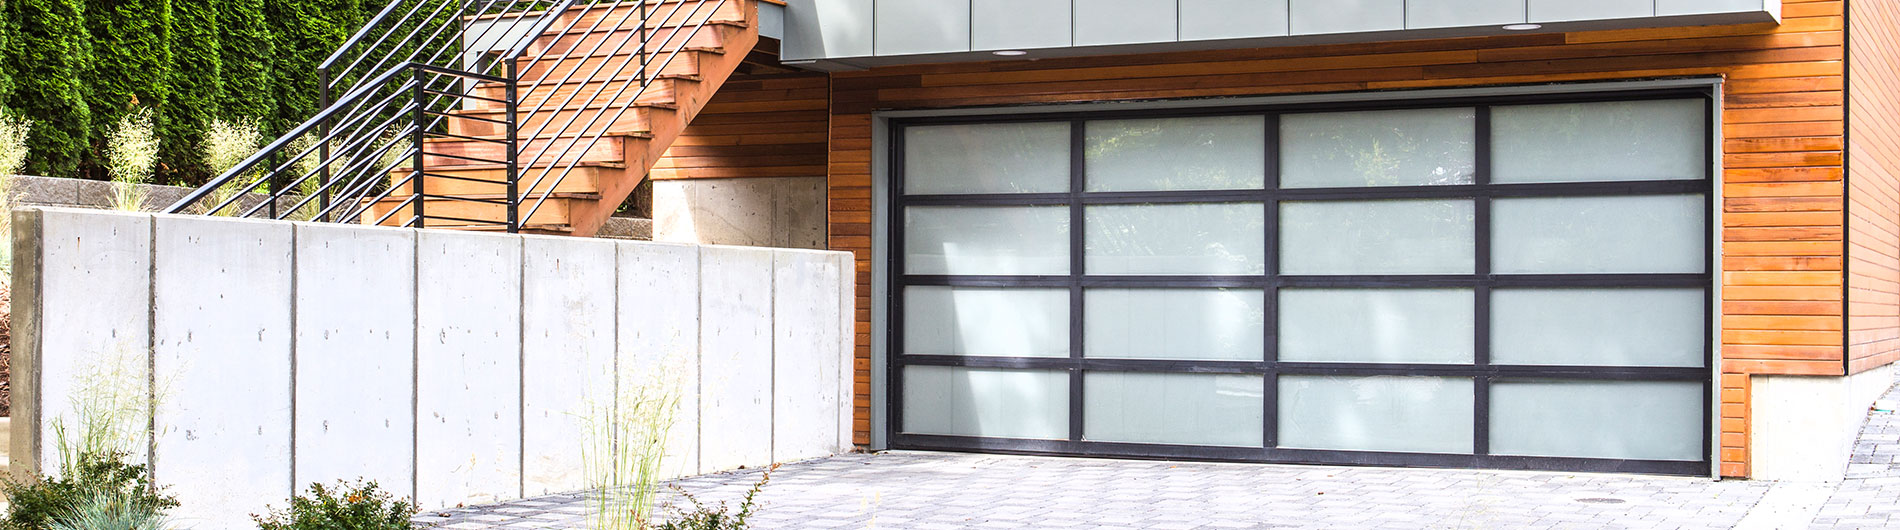 glass garage doors. Model 8800, Black Anodized Aluminum, White Laminated Glass Garage Doors